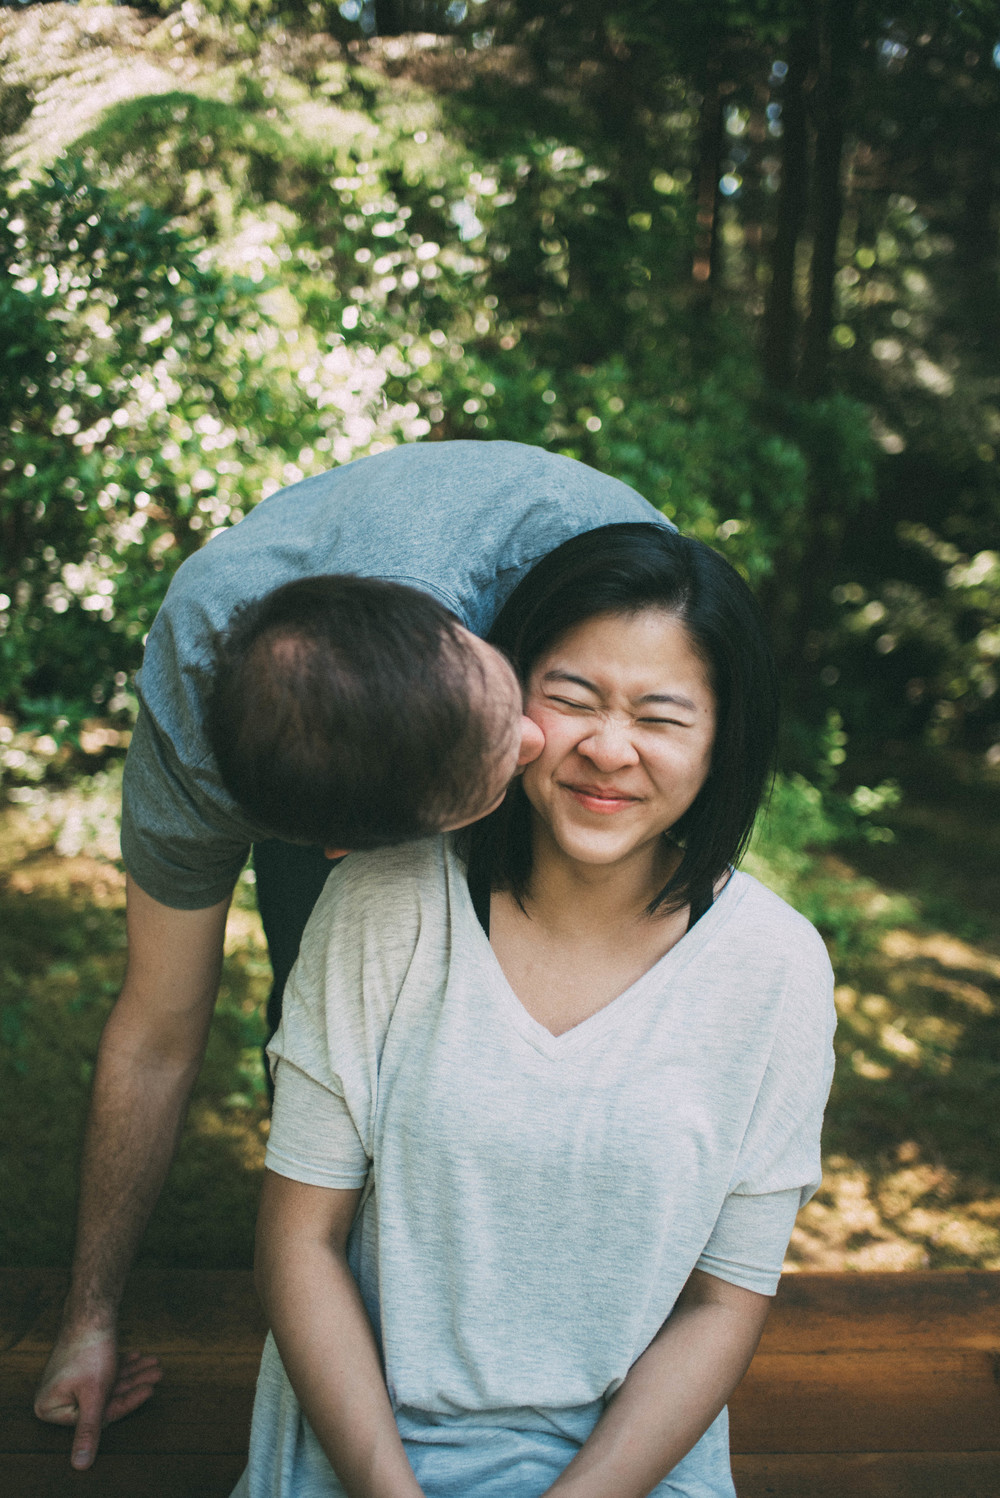 UBC Endowment Land Spirit Spirit Park Nitobe Garden Forest Wood Engagement Couple Connection Portrait Photography Session by Jo+Bo Vancouver Thailand Destination wedding lifestyle family photographer